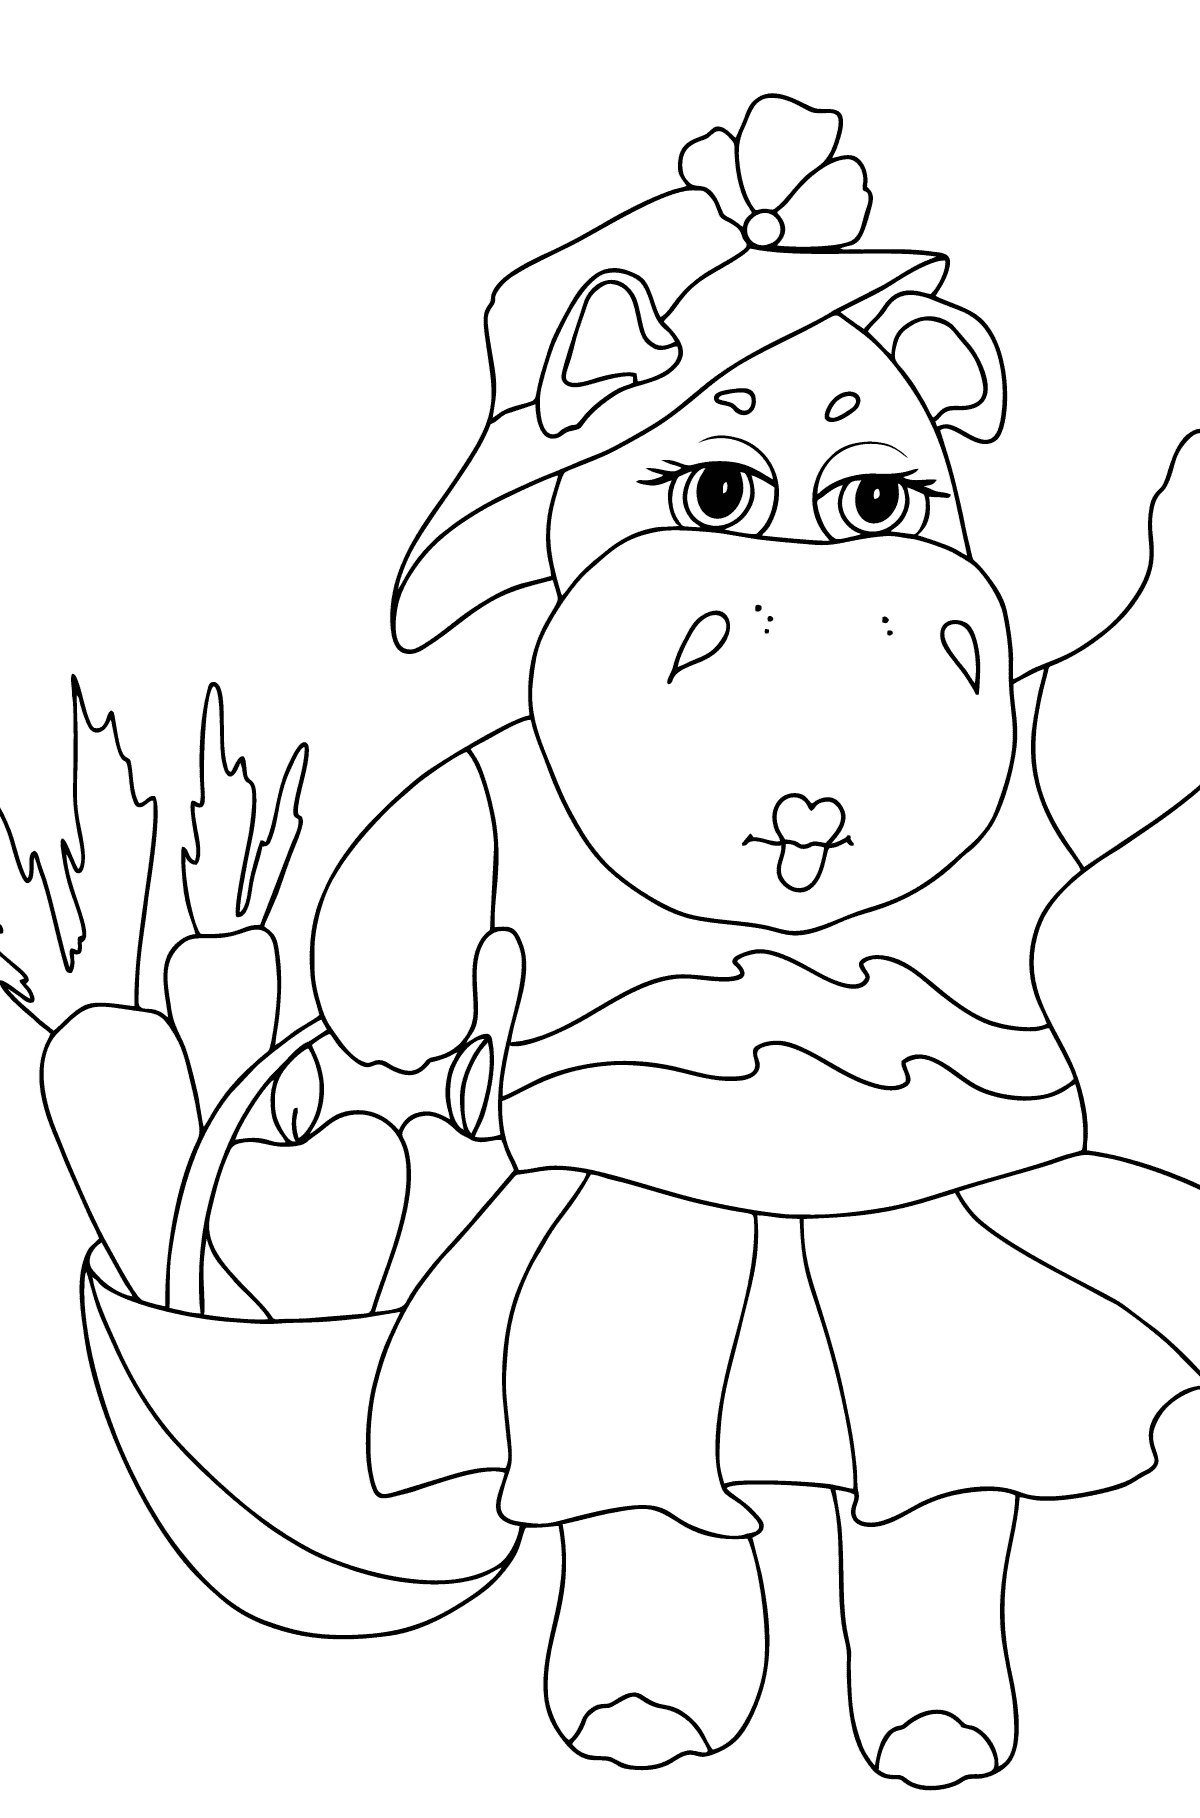 Coloring Page - A Hippo with a Crop Basket for Children